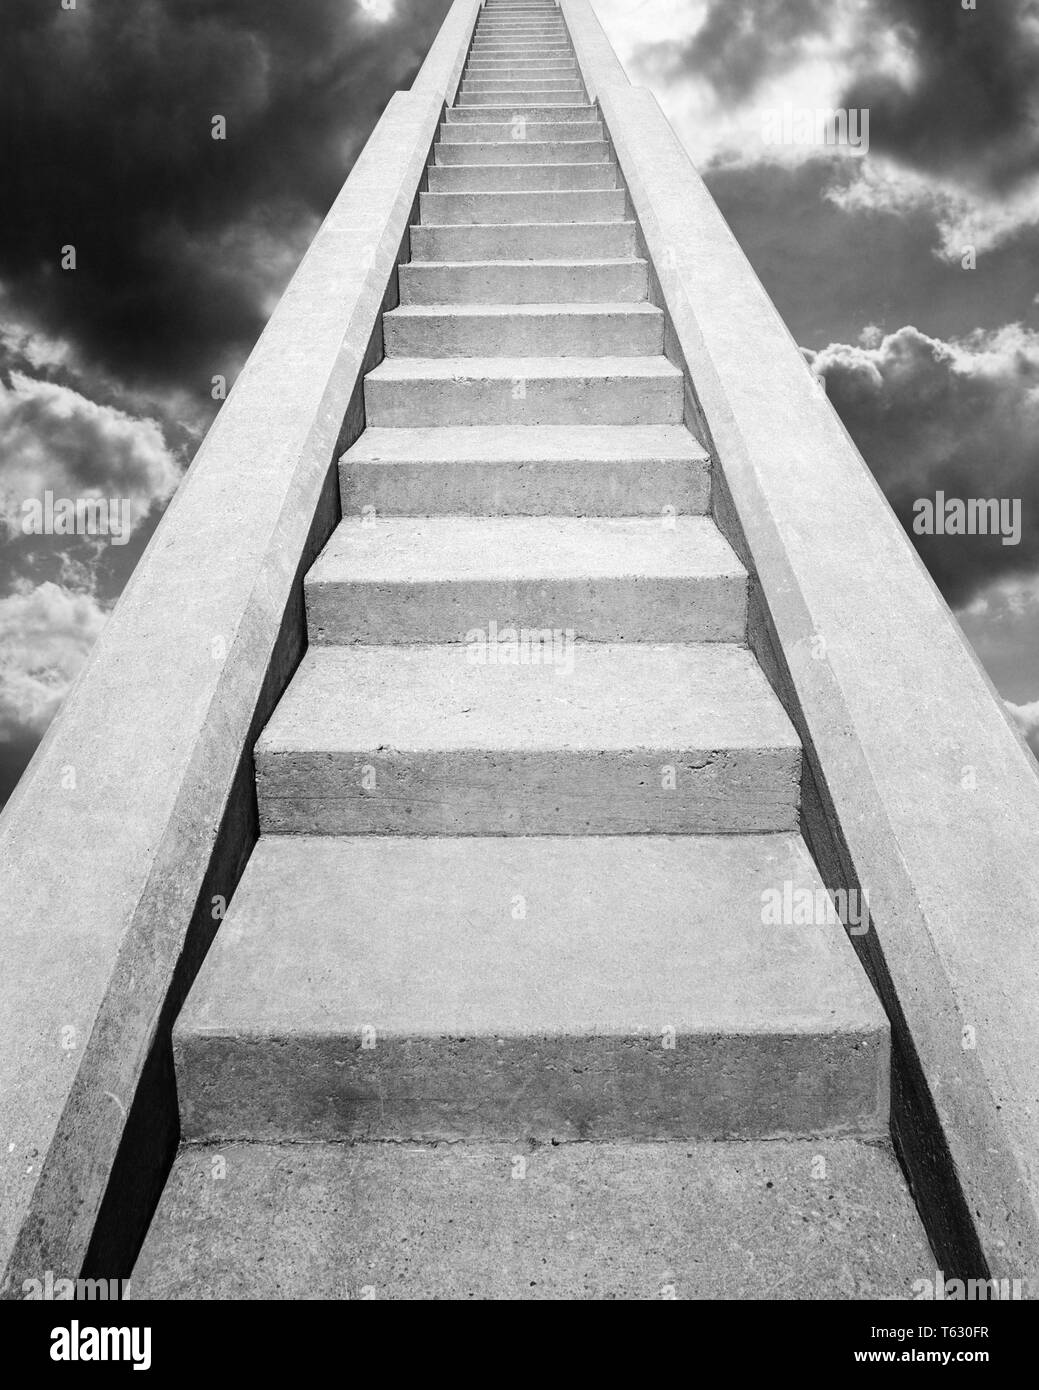 VIEW AT BOTTOM OF SET OF CONCRETE STAIRS  LOOKING UP TO THE TOP IN THE CLOUDS IN THE SKY IN THE HEAVENS - s14723e HAR001 HARS VICTORY HEAVENS CHOICE COMPOSITE EXTERIOR LOW ANGLE STAIR DIRECTION HEAVEN UP STAIRCASE STAIRWAY CONCEPT CONNECTION CONCEPTUAL STILL LIFE PARADISE STEEP STYLISH FAITHFUL SYMBOLIC CONCEPTS FAITH GROWTH IDEAS LOOKING  UP REWARD BELIEF BLACK AND WHITE CONCRETE HAR001 OLD FASHIONED REPRESENTATION - Stock Image